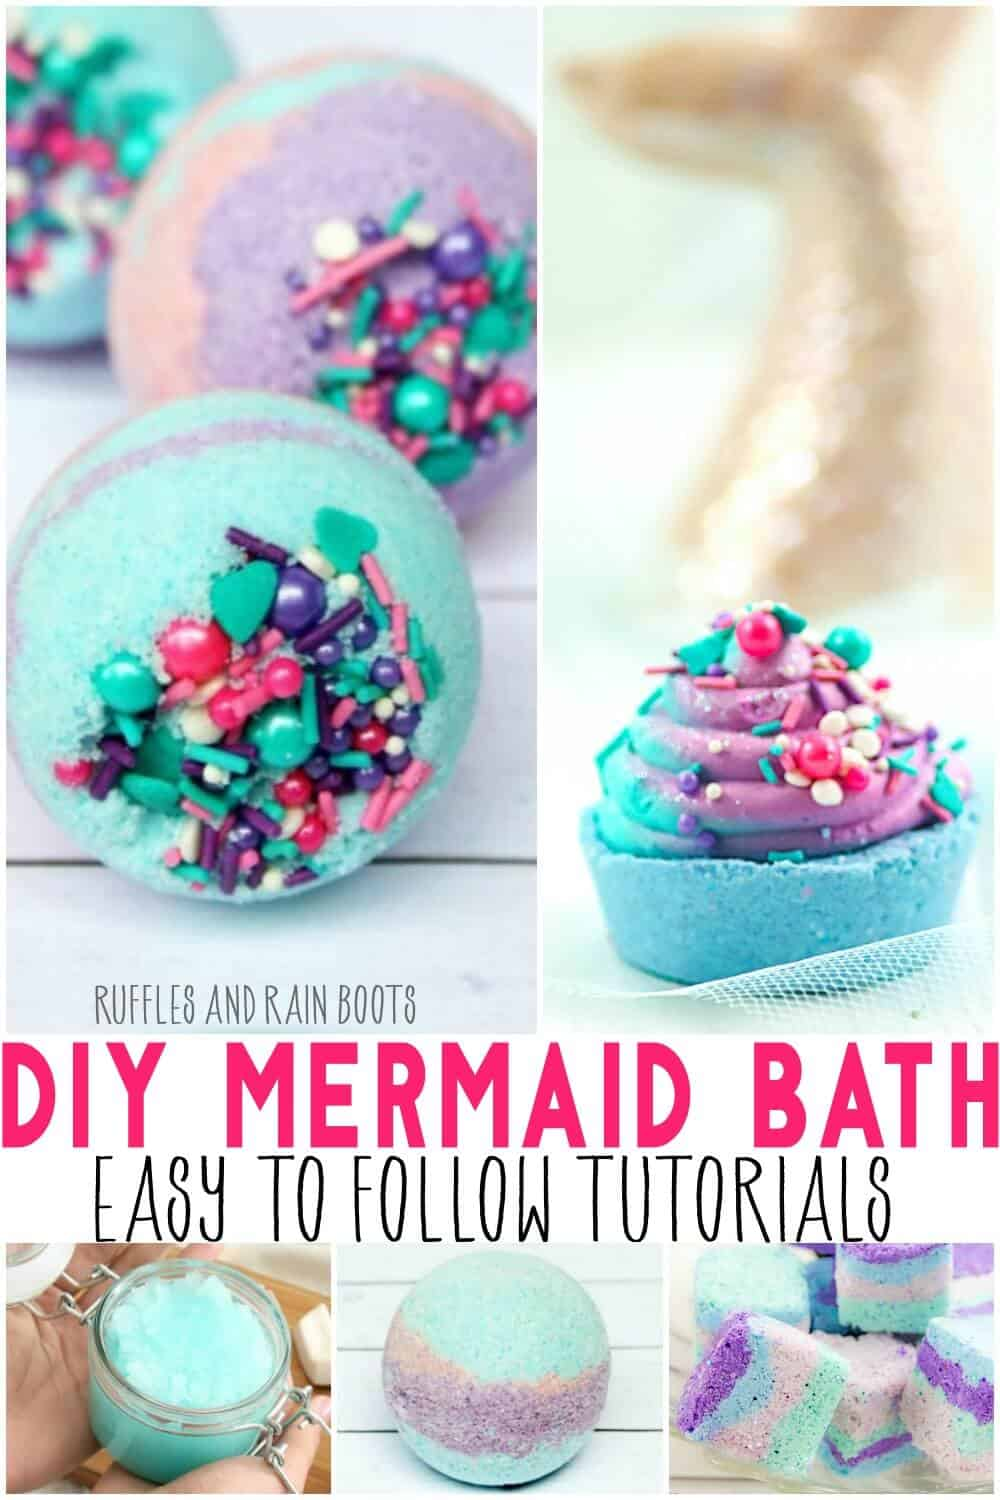 5 image collage with text white reads DIY mermaid bath easy to follow tutorials